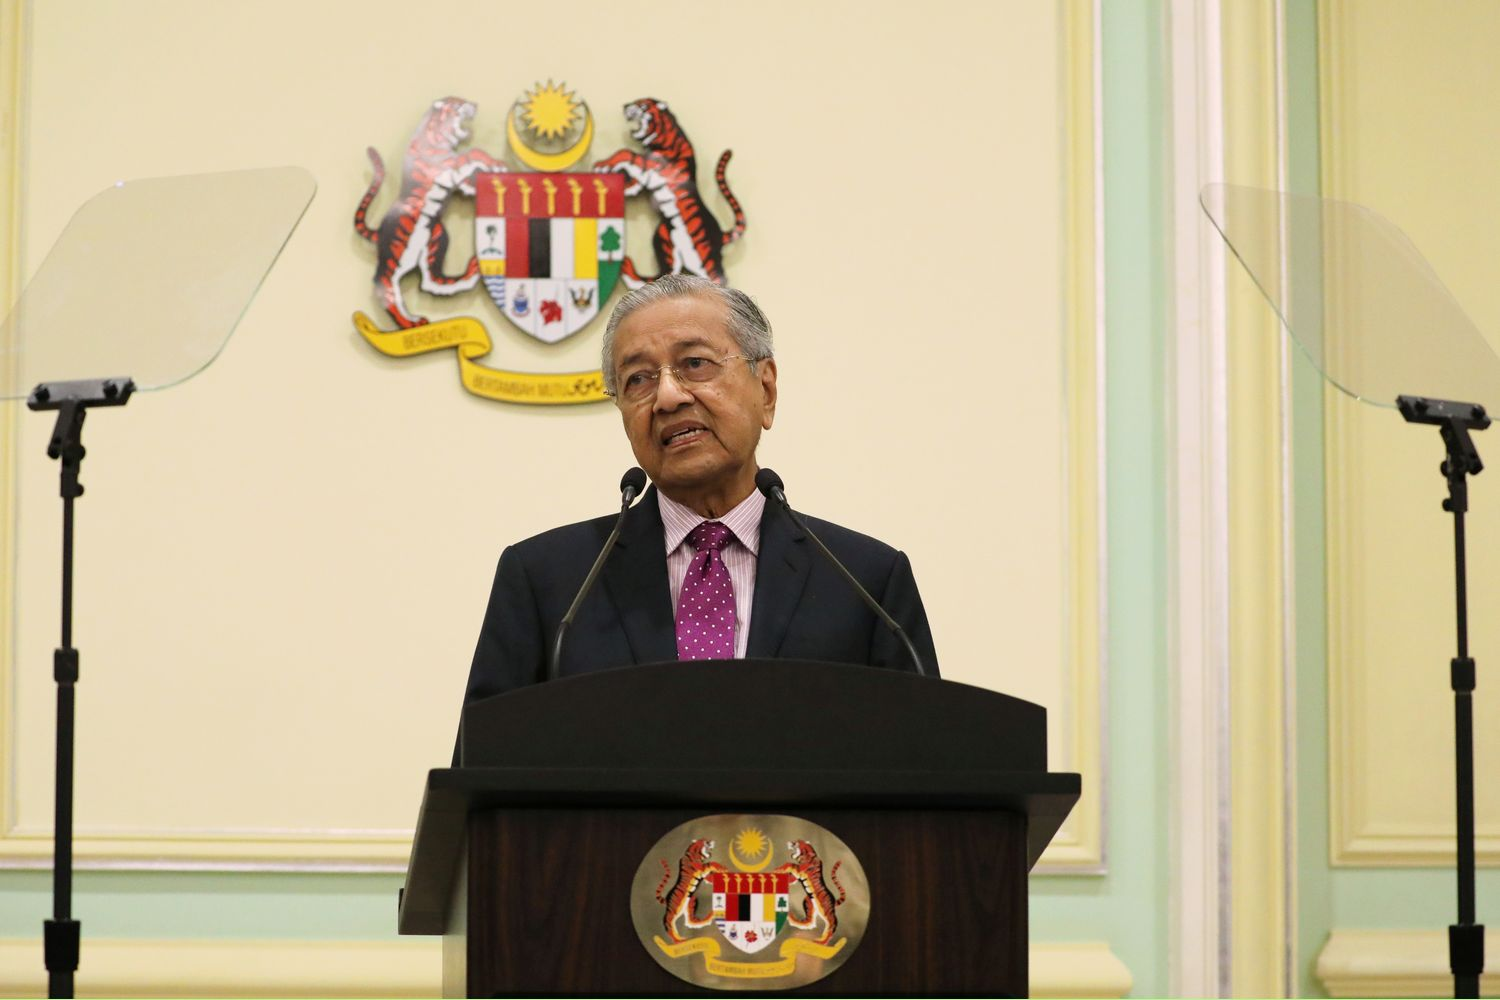 Malaysia's Interim Prime Minister Mahathir Mohamad speaks during a news conference in Putrajaya, Malaysia, on Thursday. (Reuters photo)